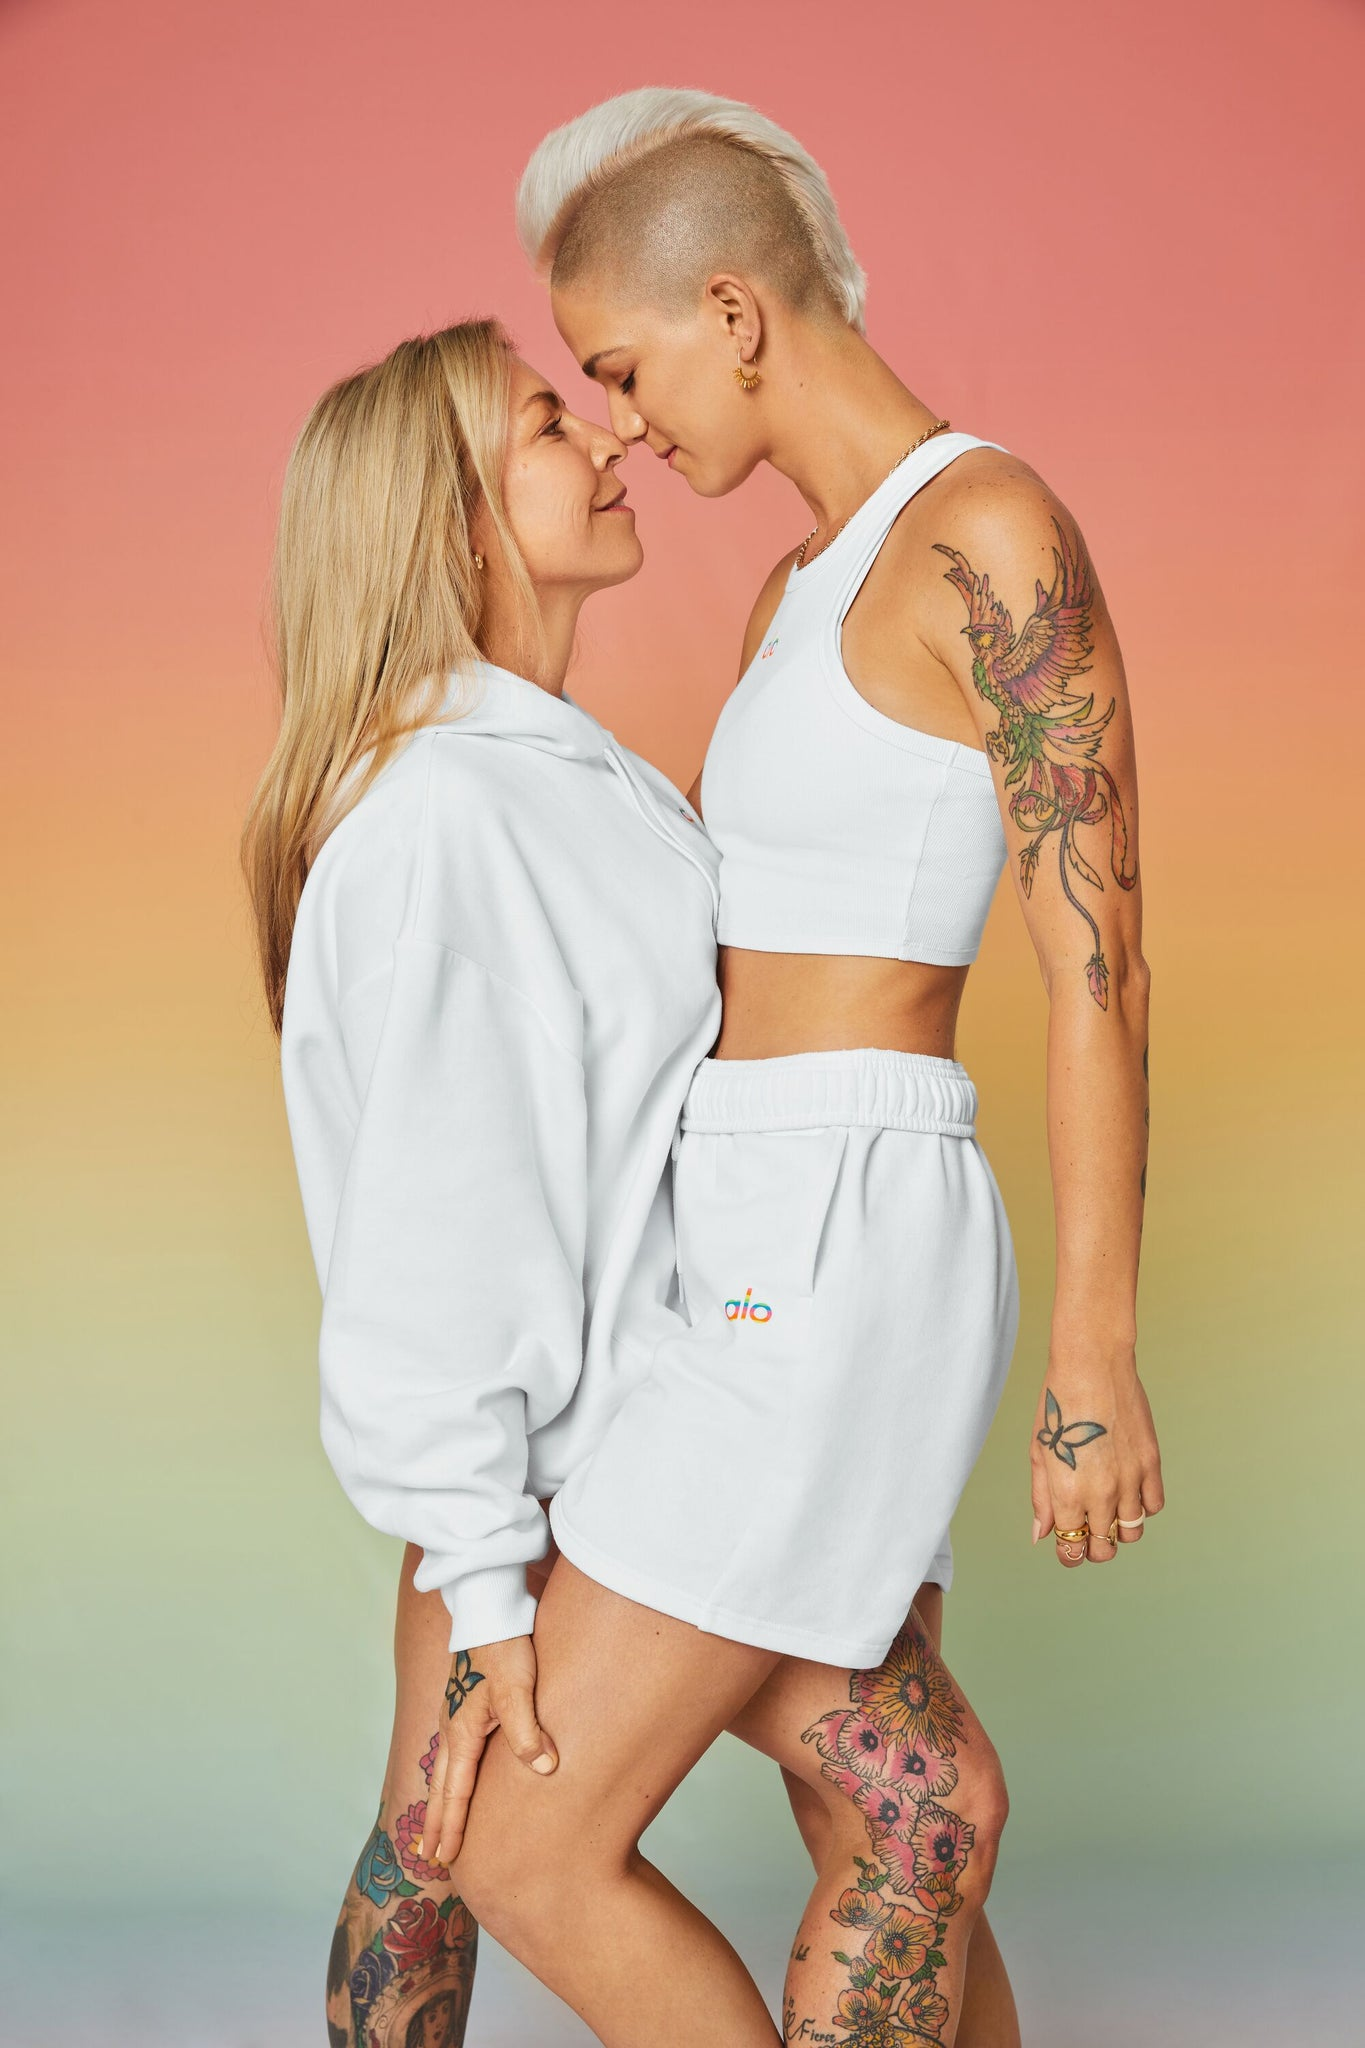 Two women posing in front of an ombre rainbow backdrop wearing all white clothing with rainbow logos.